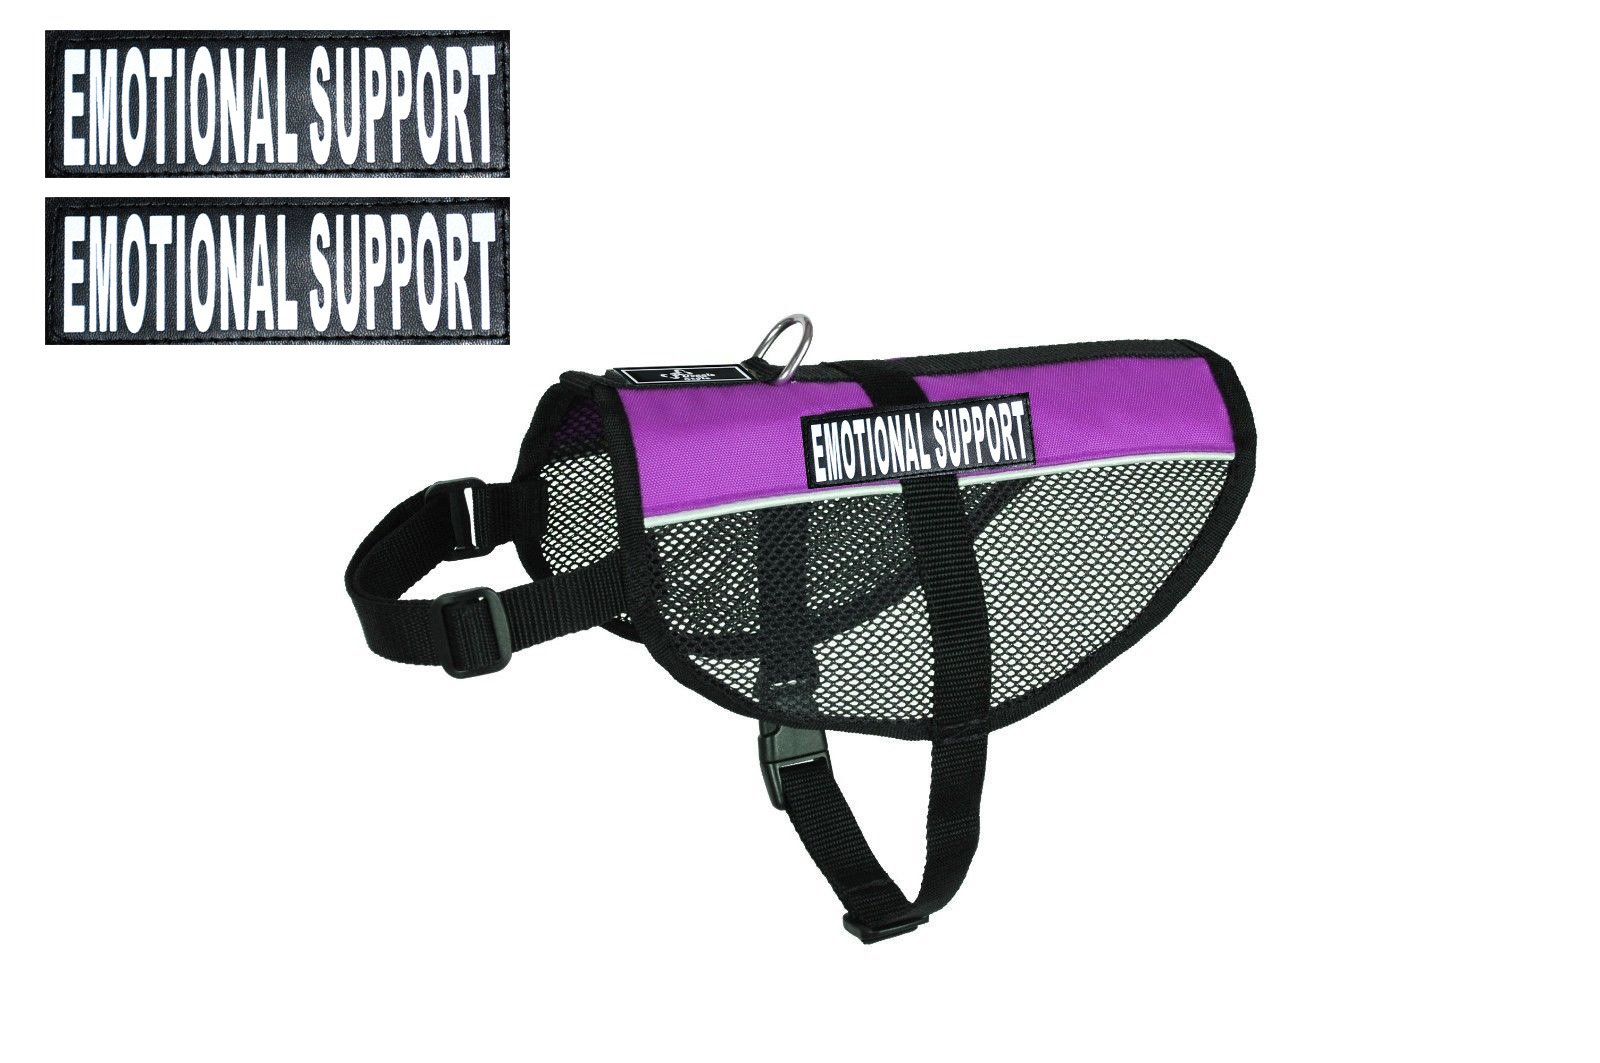 Emotional Support Service Dog mesh Vest Harness Cool Comfort. Purchase Comes with 2 Reflective Emotional Support Removable Patches. Please Measure Your Dog Before Ordering